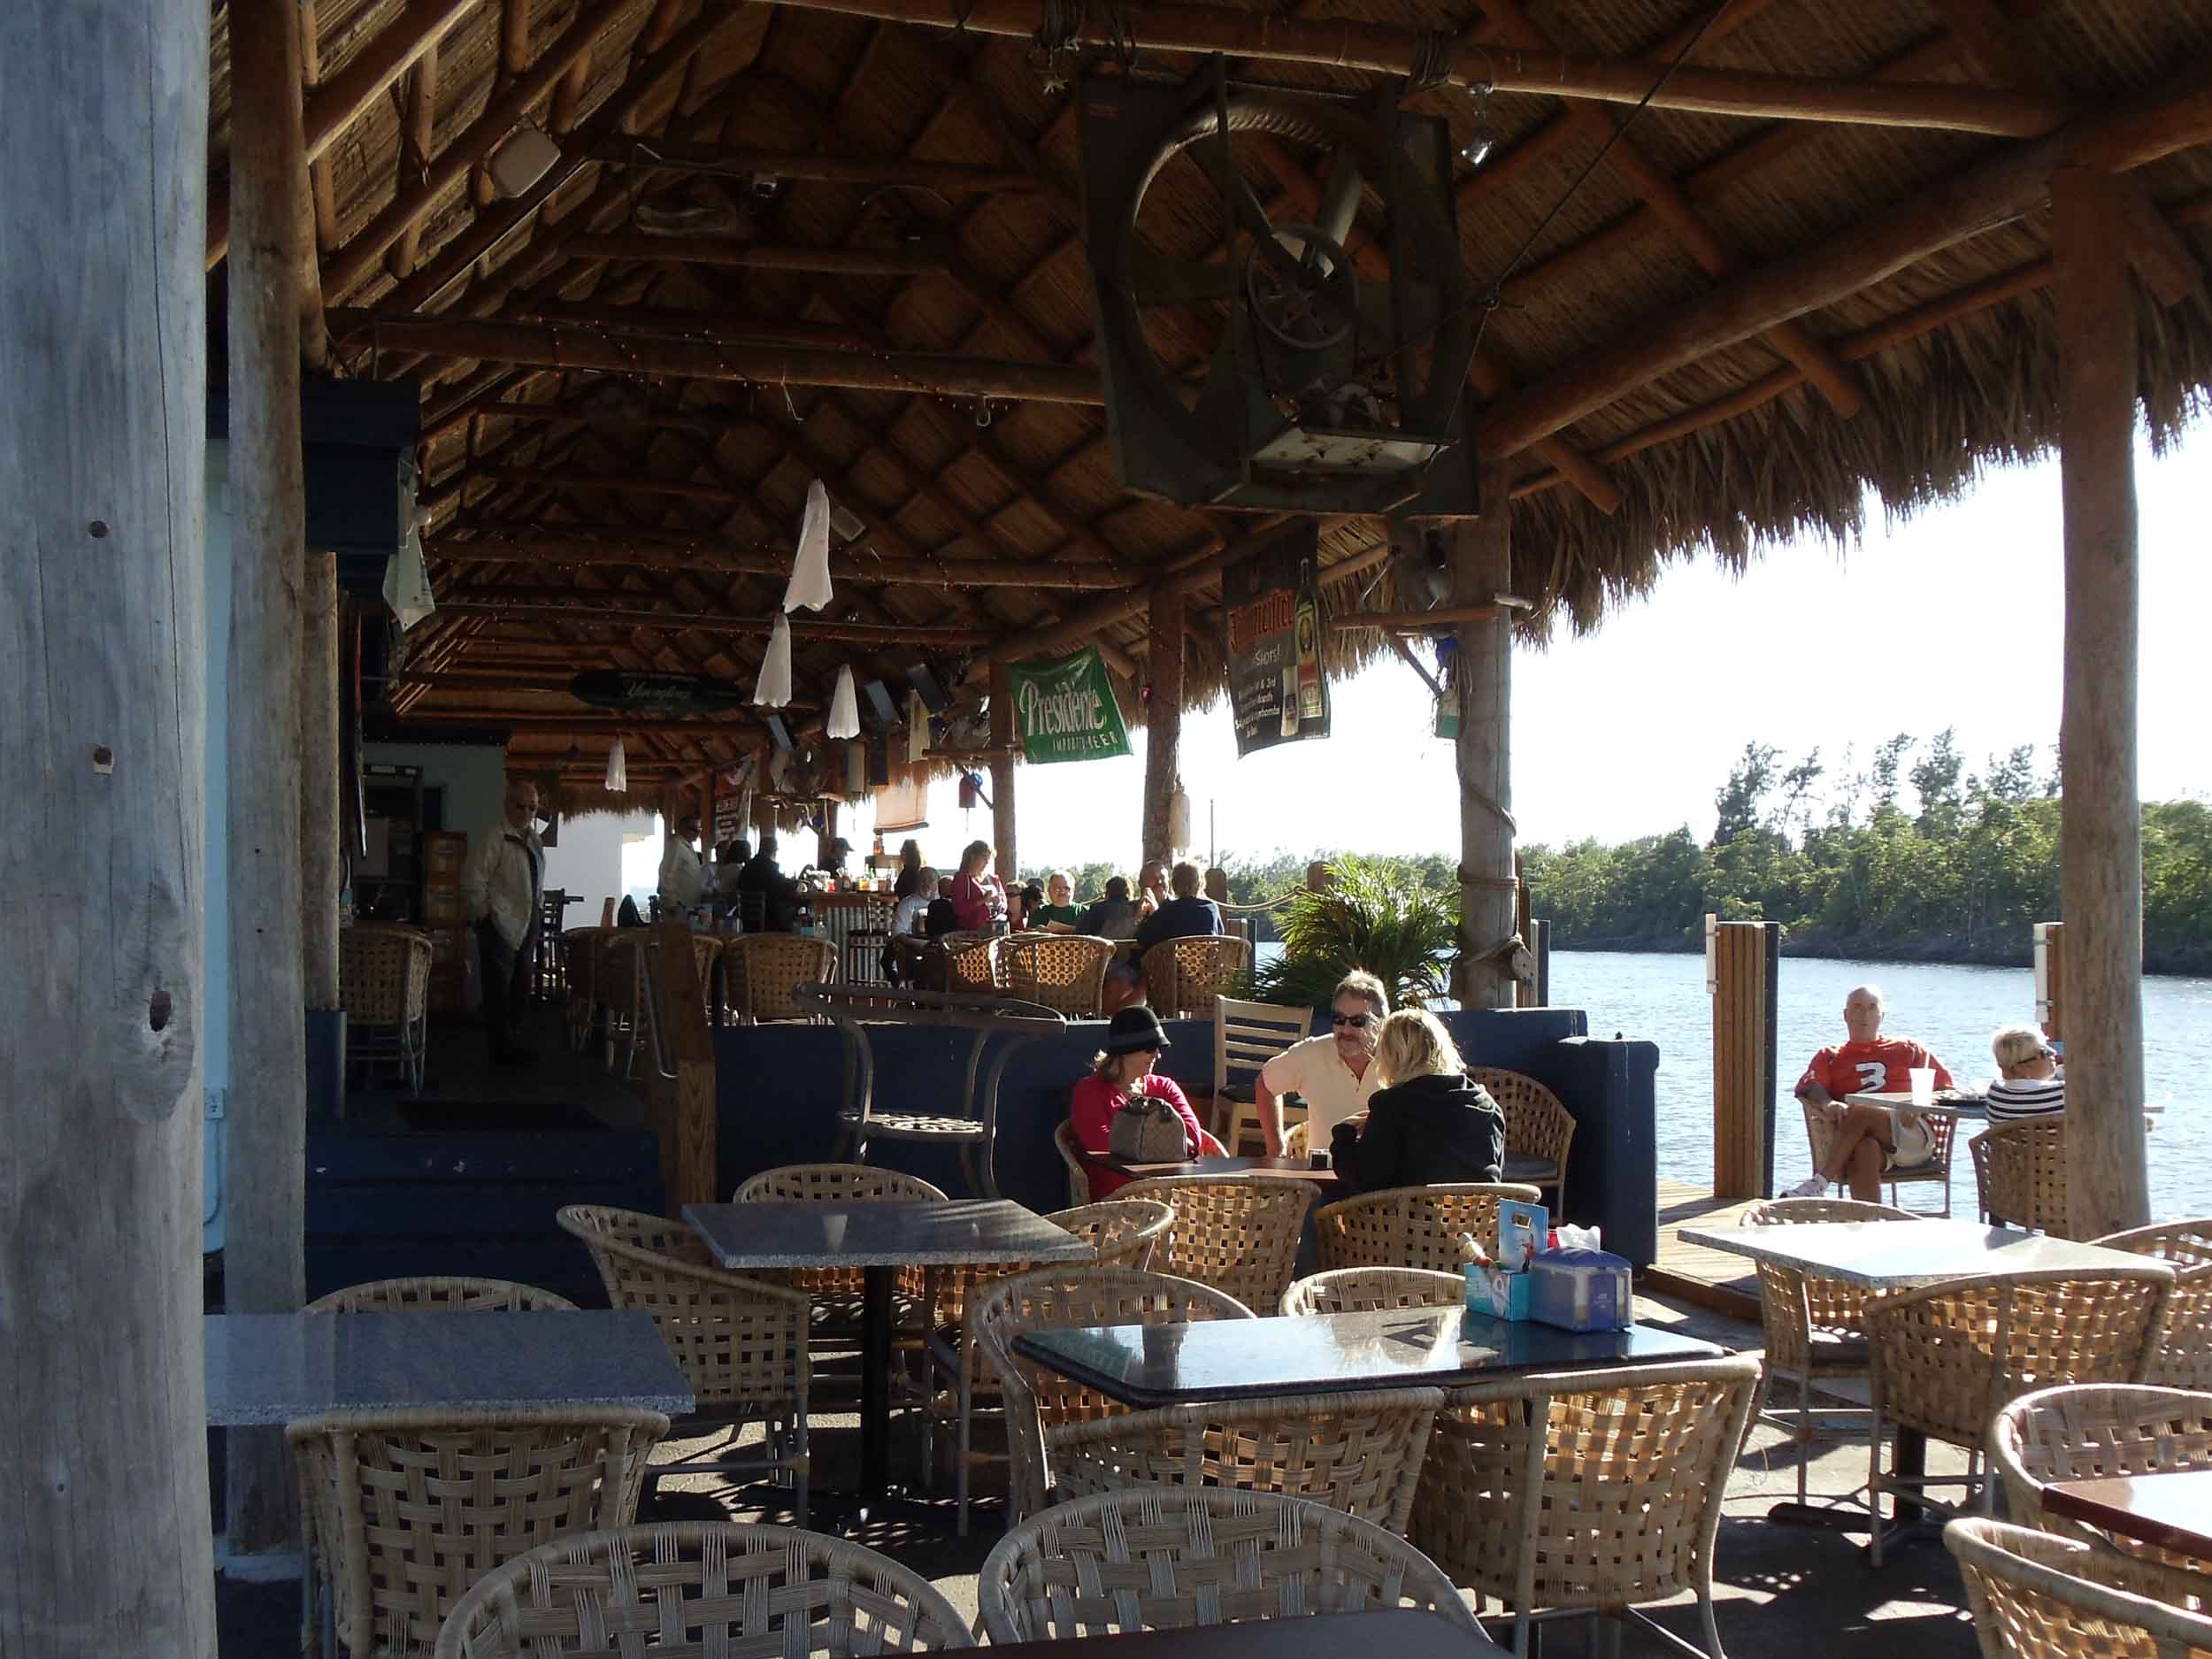 jimbos-sandbar-outside-tables.jpg